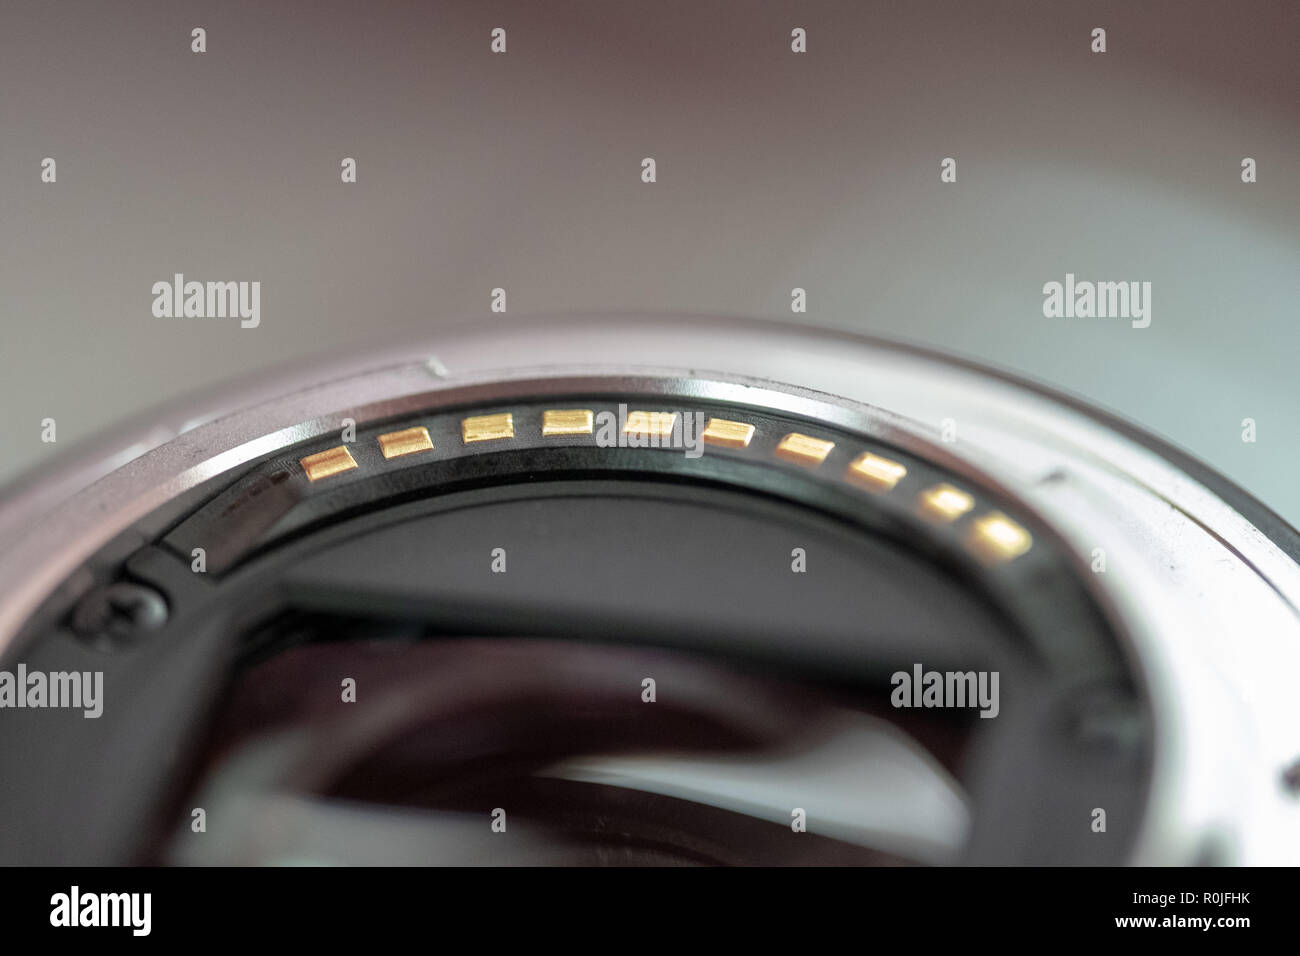 Gold contacts on the back of a camera lens - Stock Image